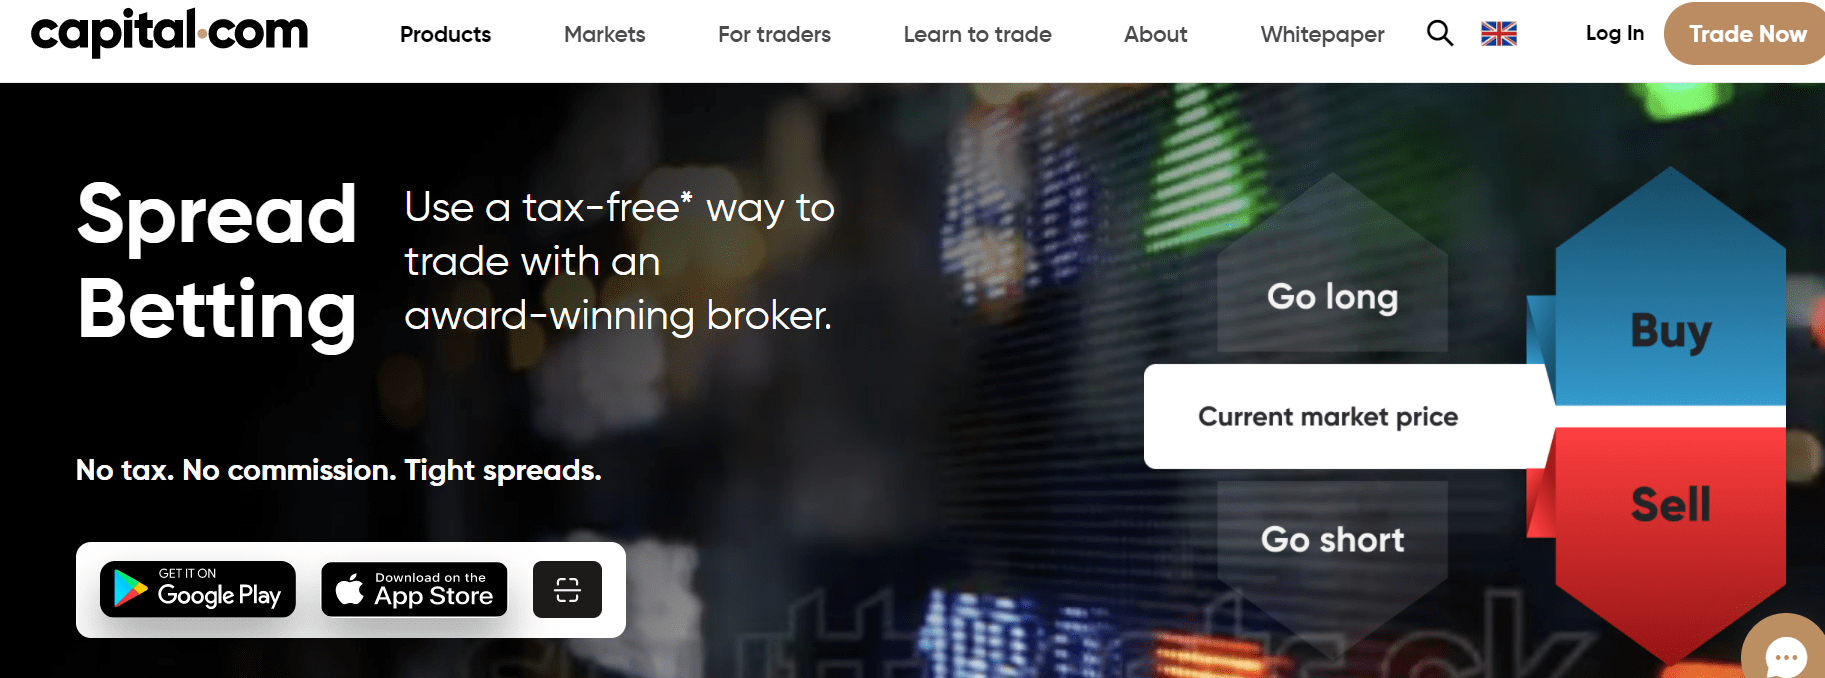 spread betting at capital